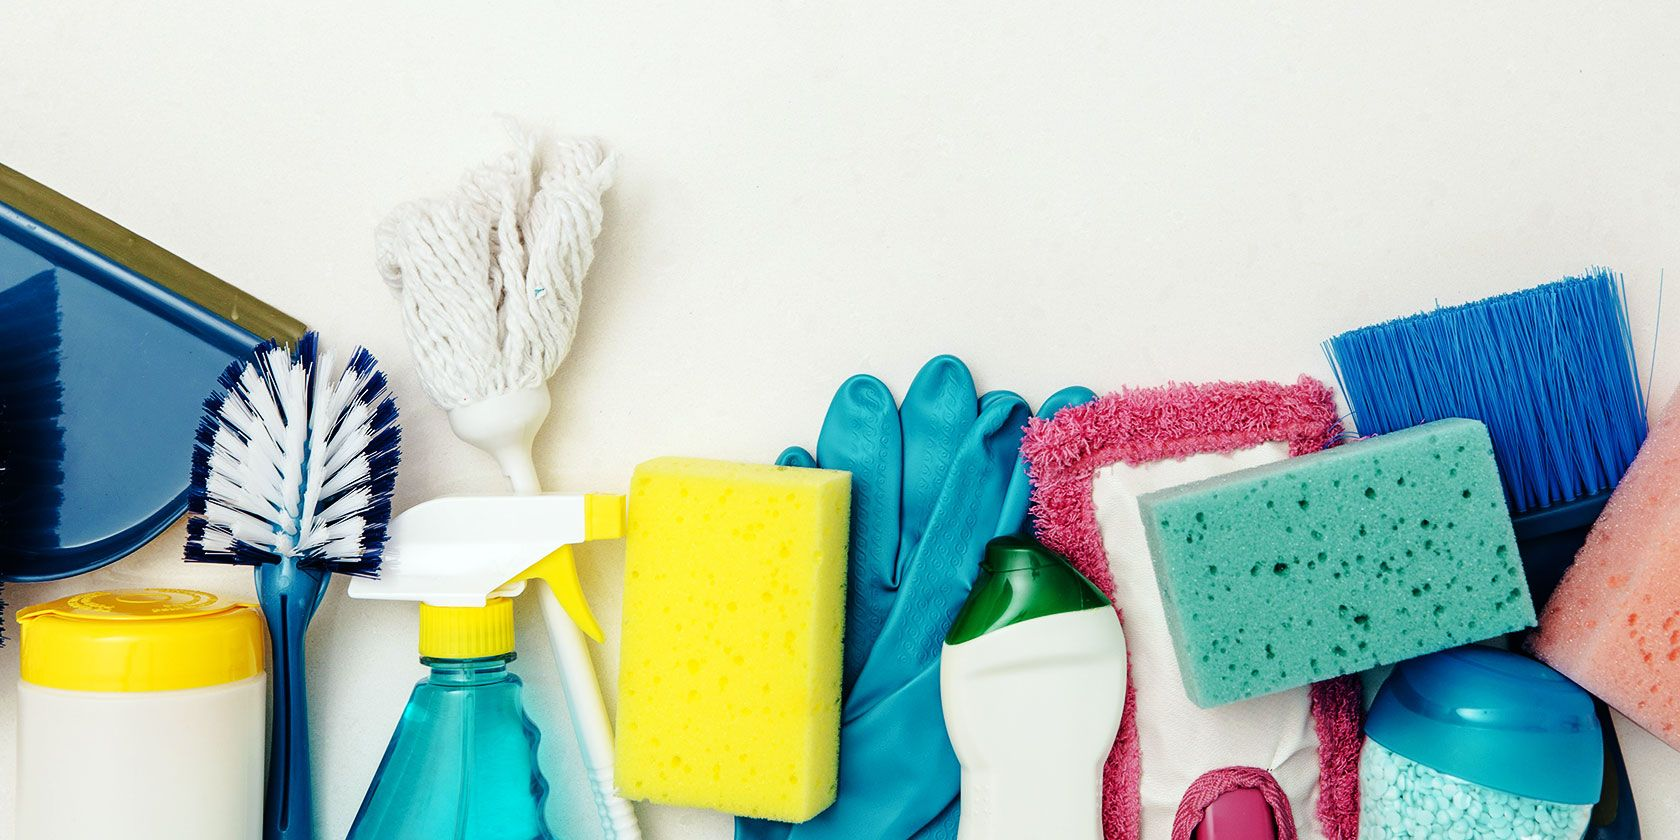 5 Household Experts Teach You How to Clean and Organize Your Home